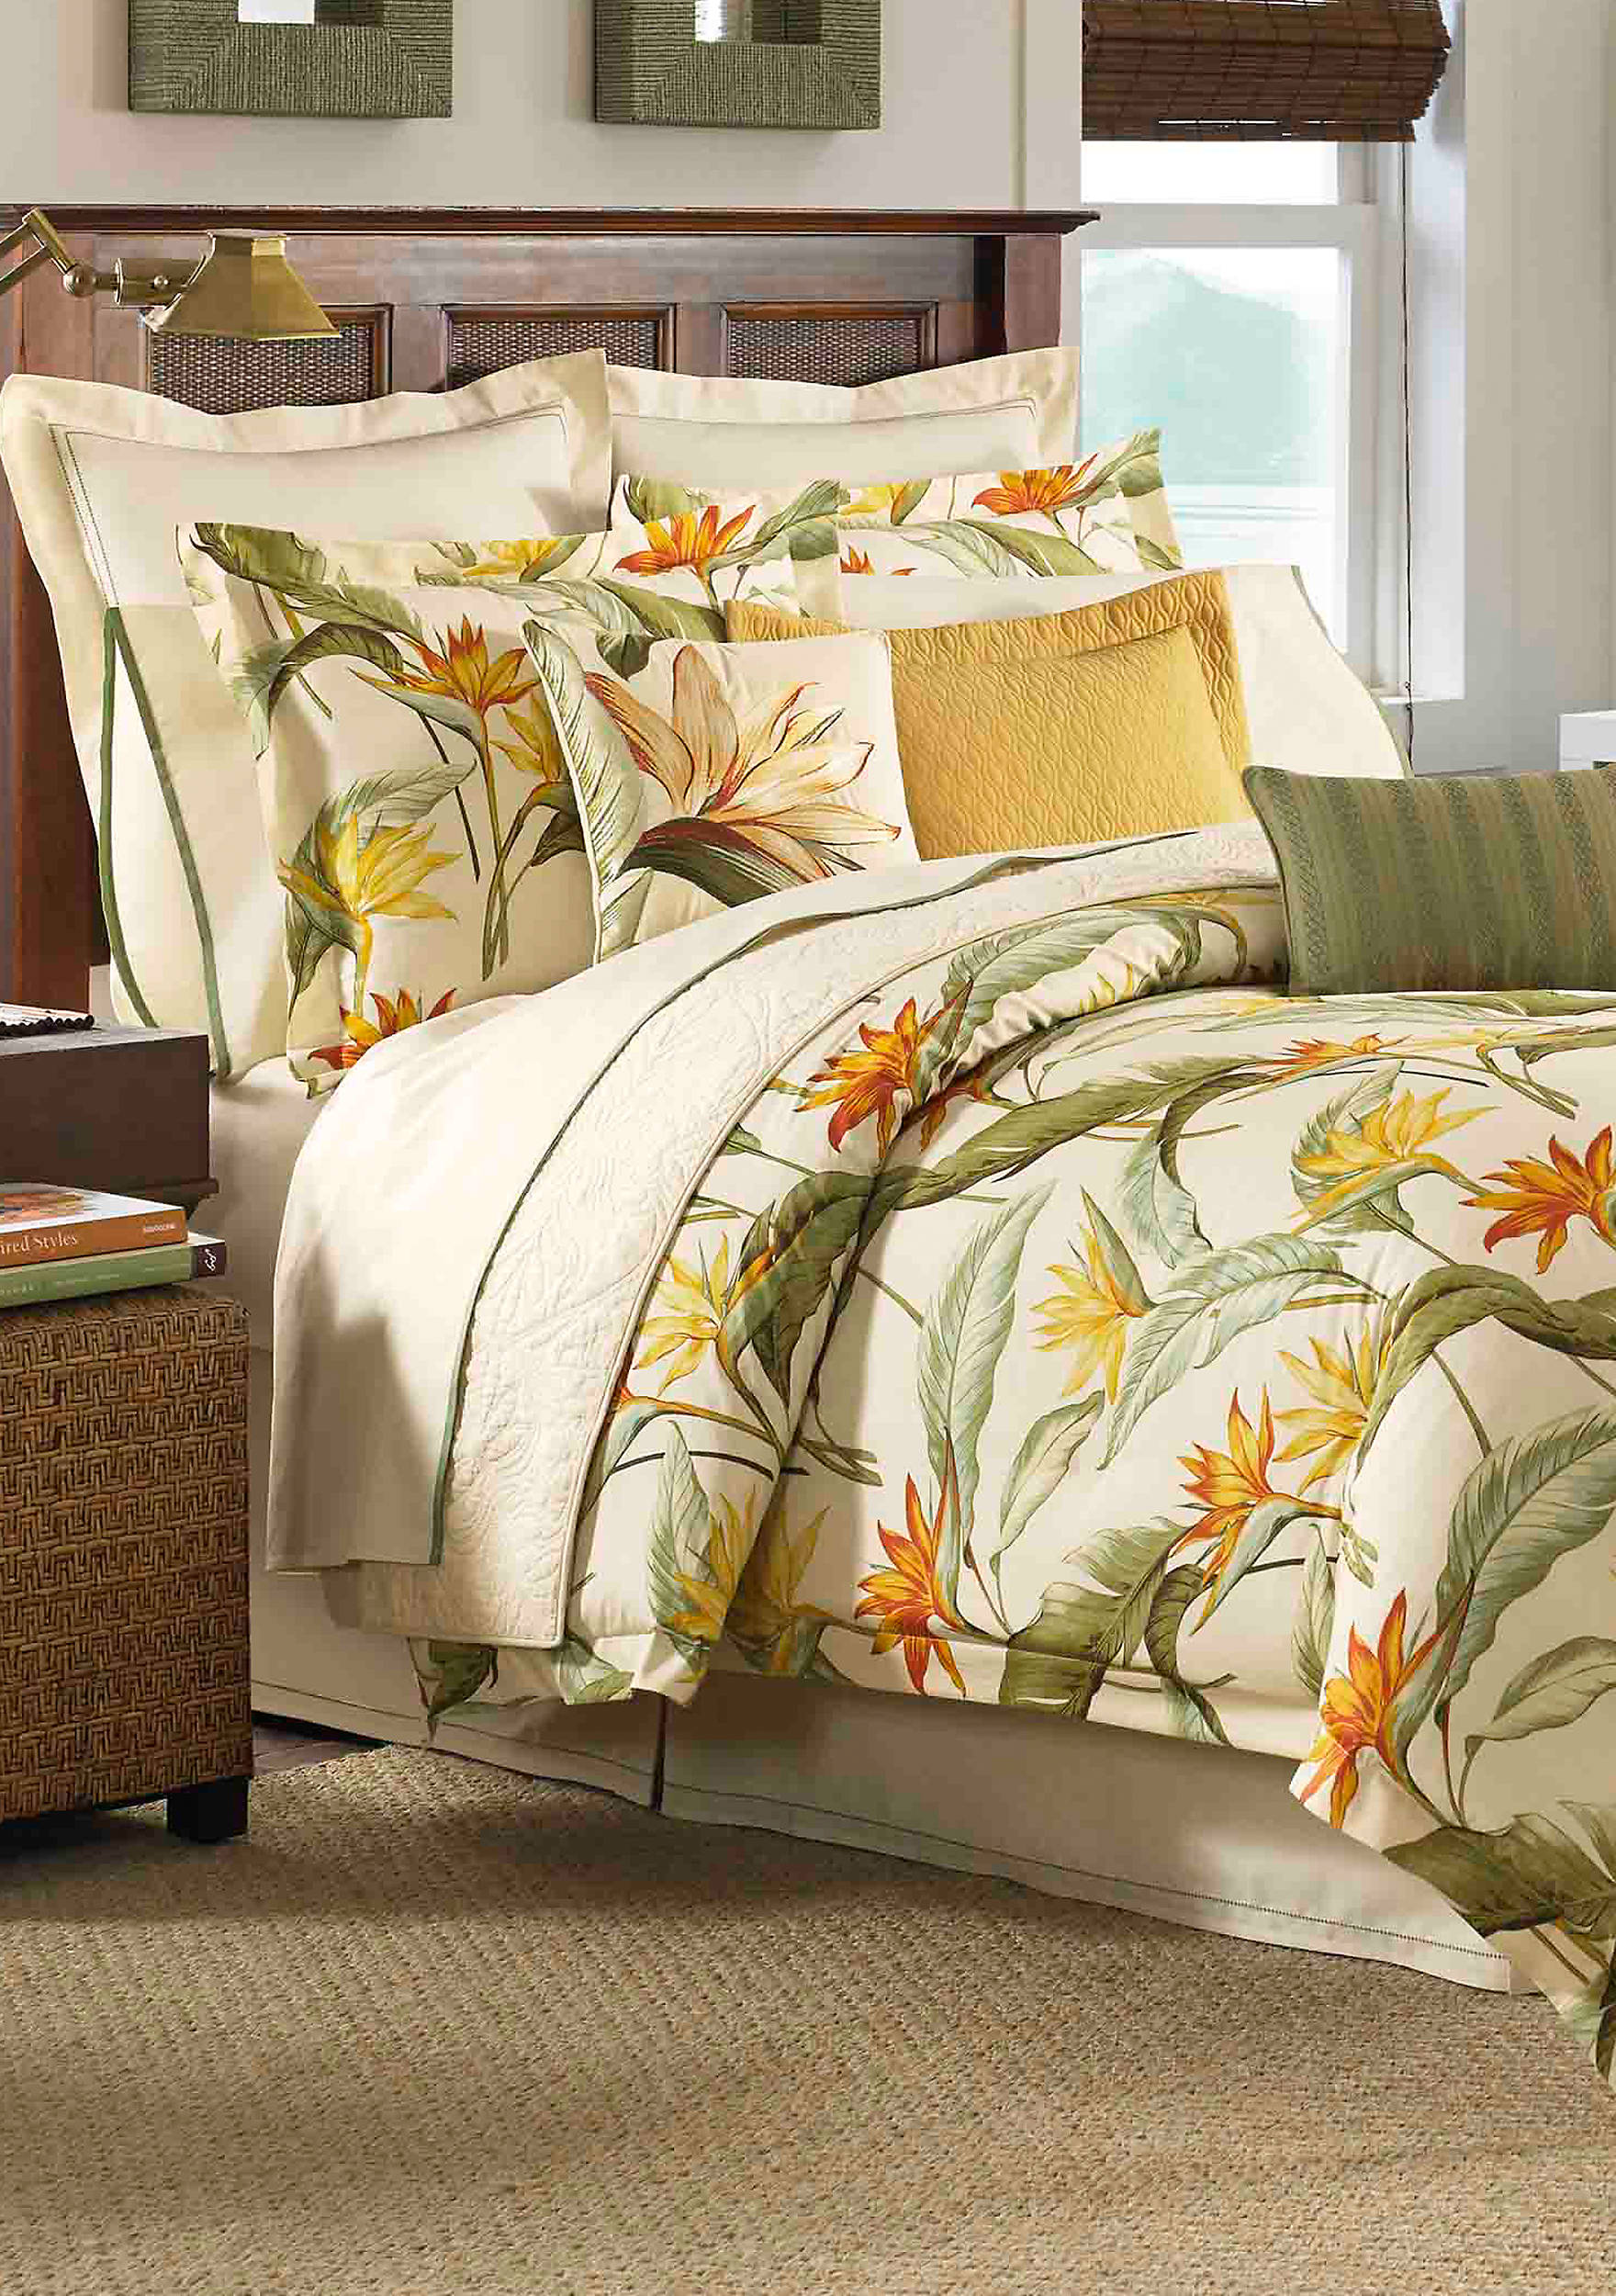 basics queen full black dvf cover gray furstenberg of tommy covers von outlet up bath drive bahamaa size set bahama cheap sale jungle hibiscus haven sheet canada online diane quilt comforter bags unisex bedding king california sets duvet ae duvets